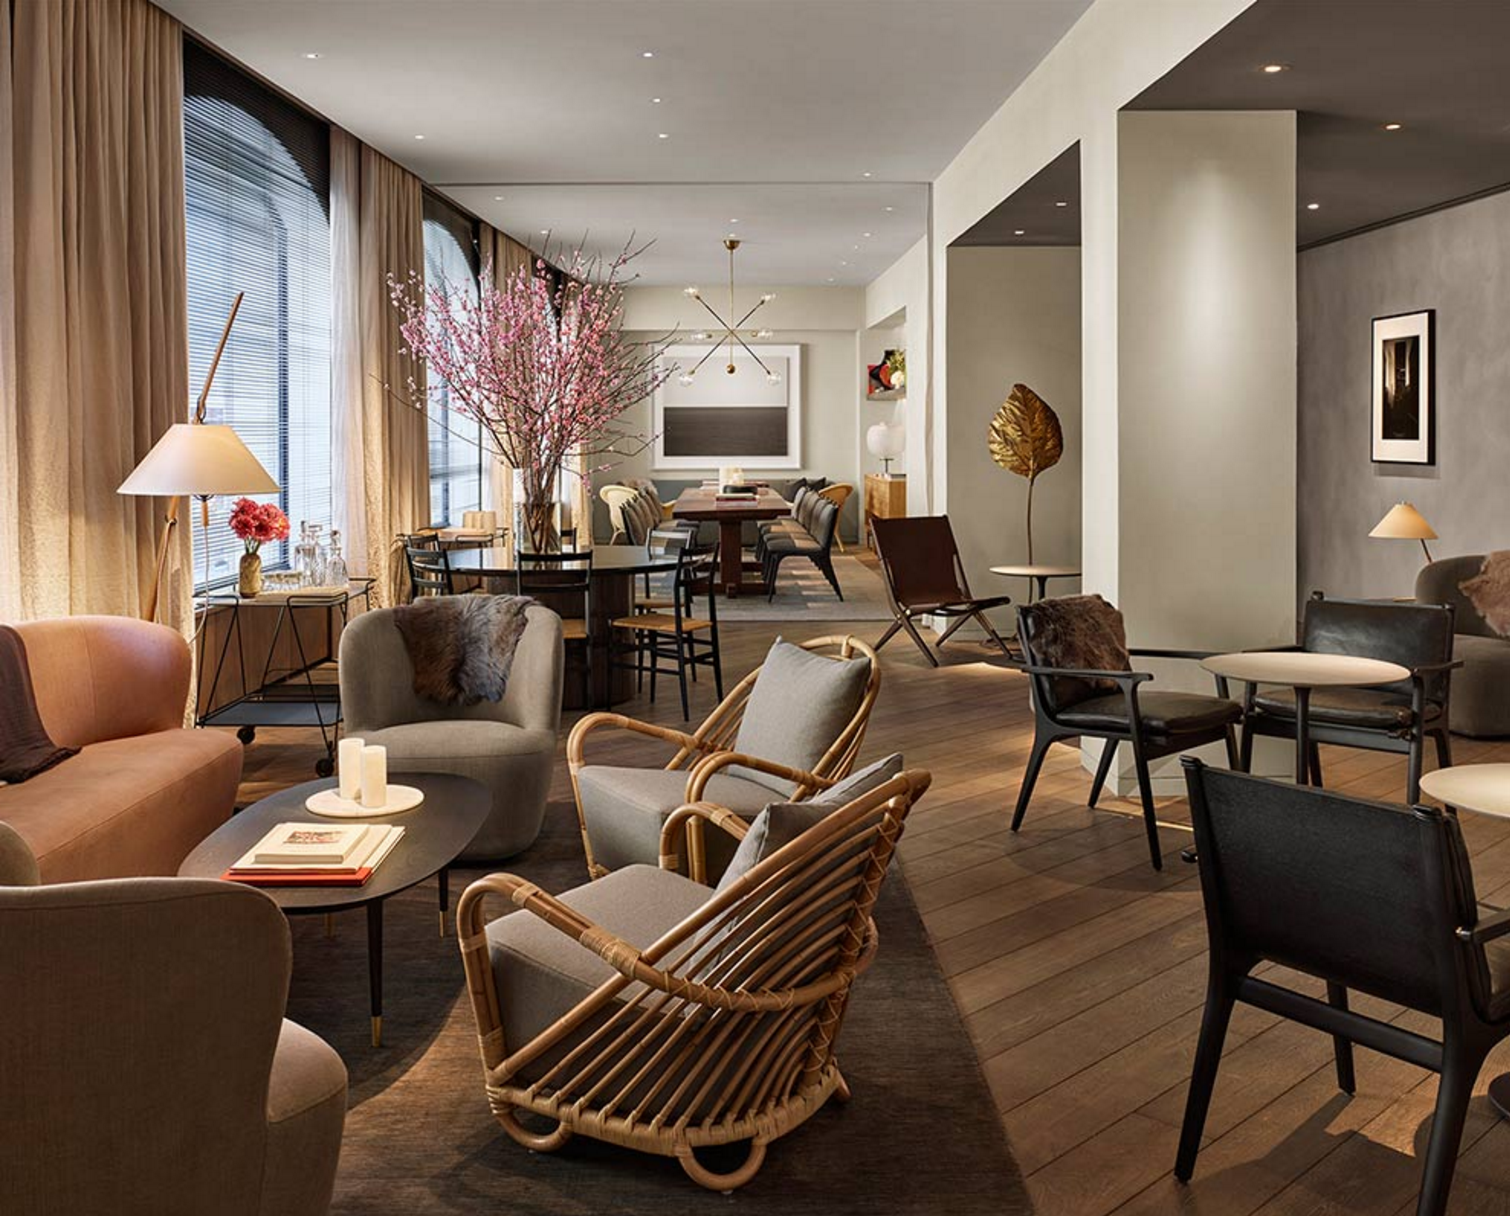 11 Howard: A Scandi Paradise In SoHo, New York